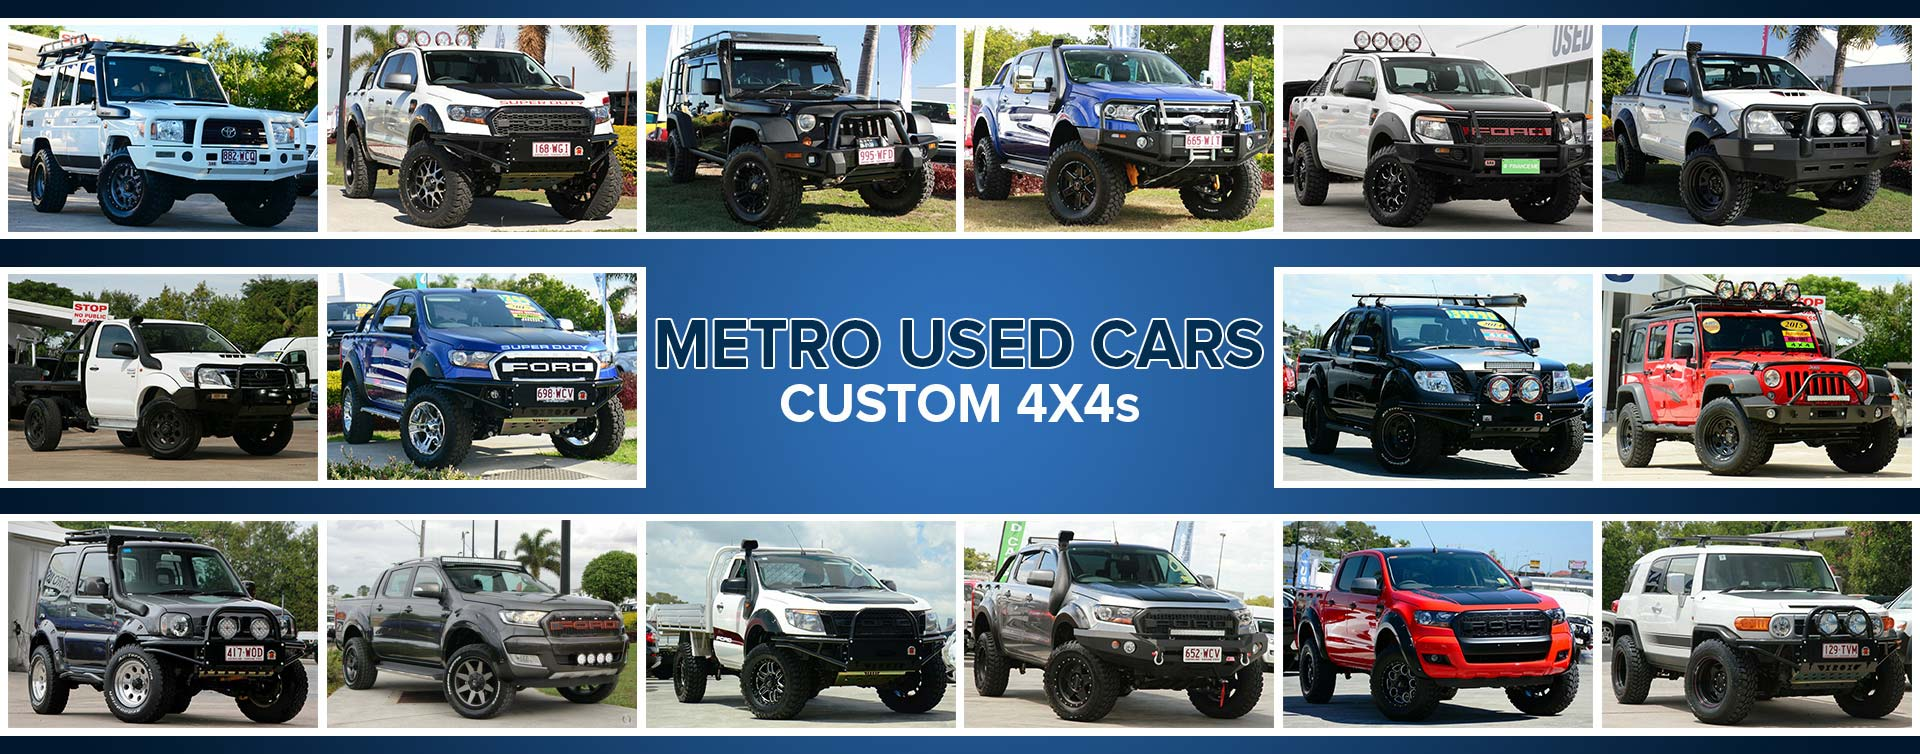 A collage of custom 4x4s from Metro Used Cars in Brisbane.